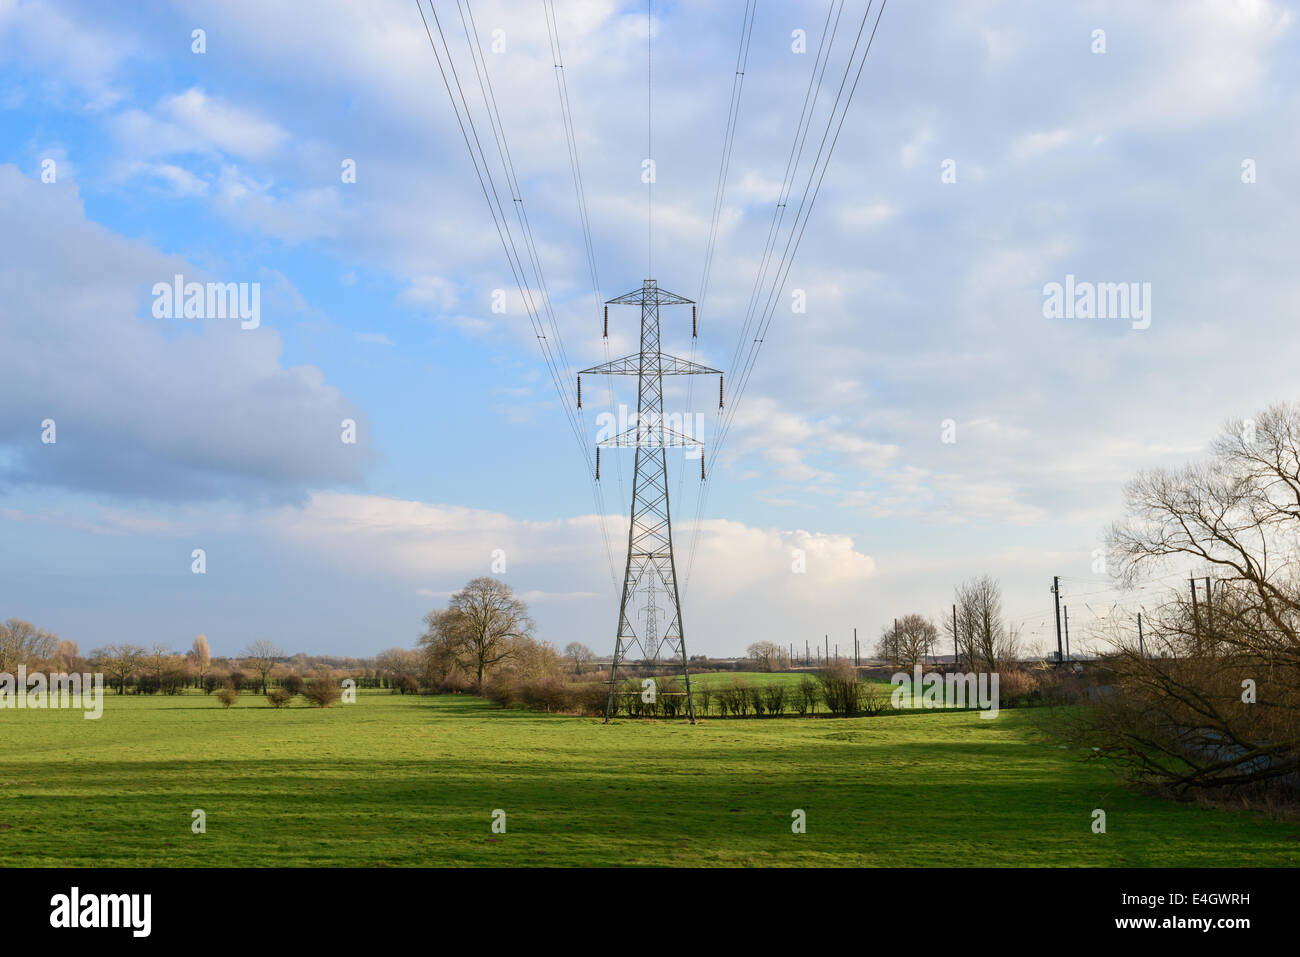 Obsolete design L6 Series suspension tower in a rural Yorkshire field, part of the National Grid. - Stock Image